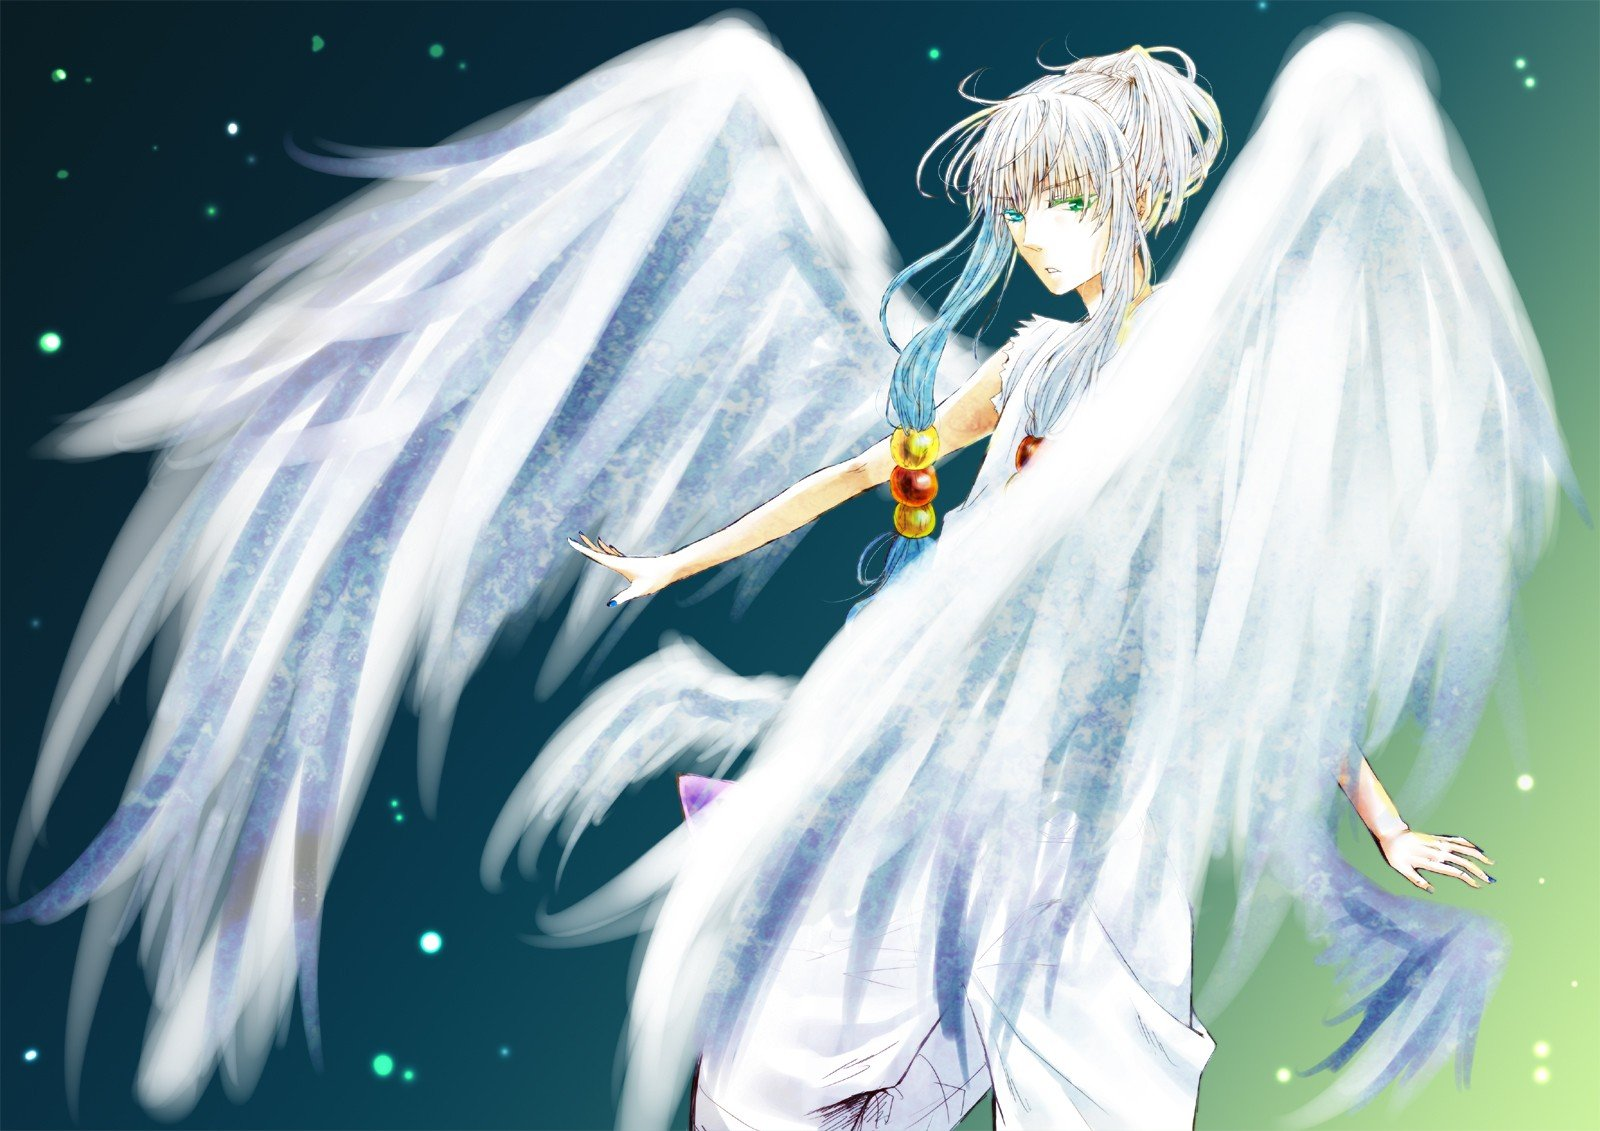 Angels wings trap anime anime boys white hair wallpaper ...